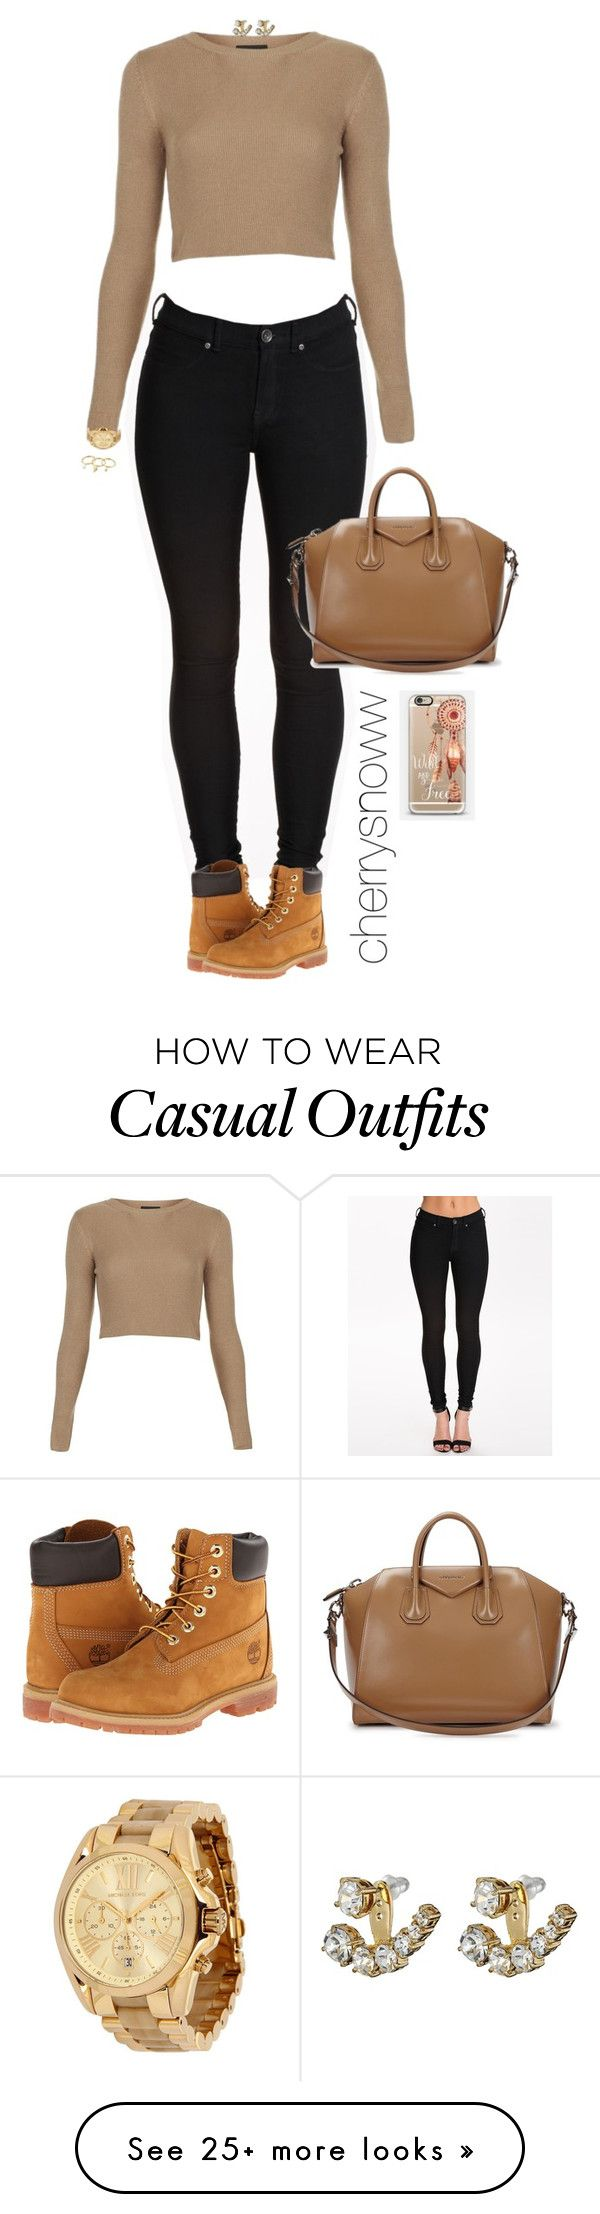 """Black and beige casual chic swag fall outfit"" by cherrysnoww on Polyvore featuring Dr. Denim, Topshop, Timberland, Givenchy, Michael Kors, Kate Spade, Rebecca Minkoff and Casetify"